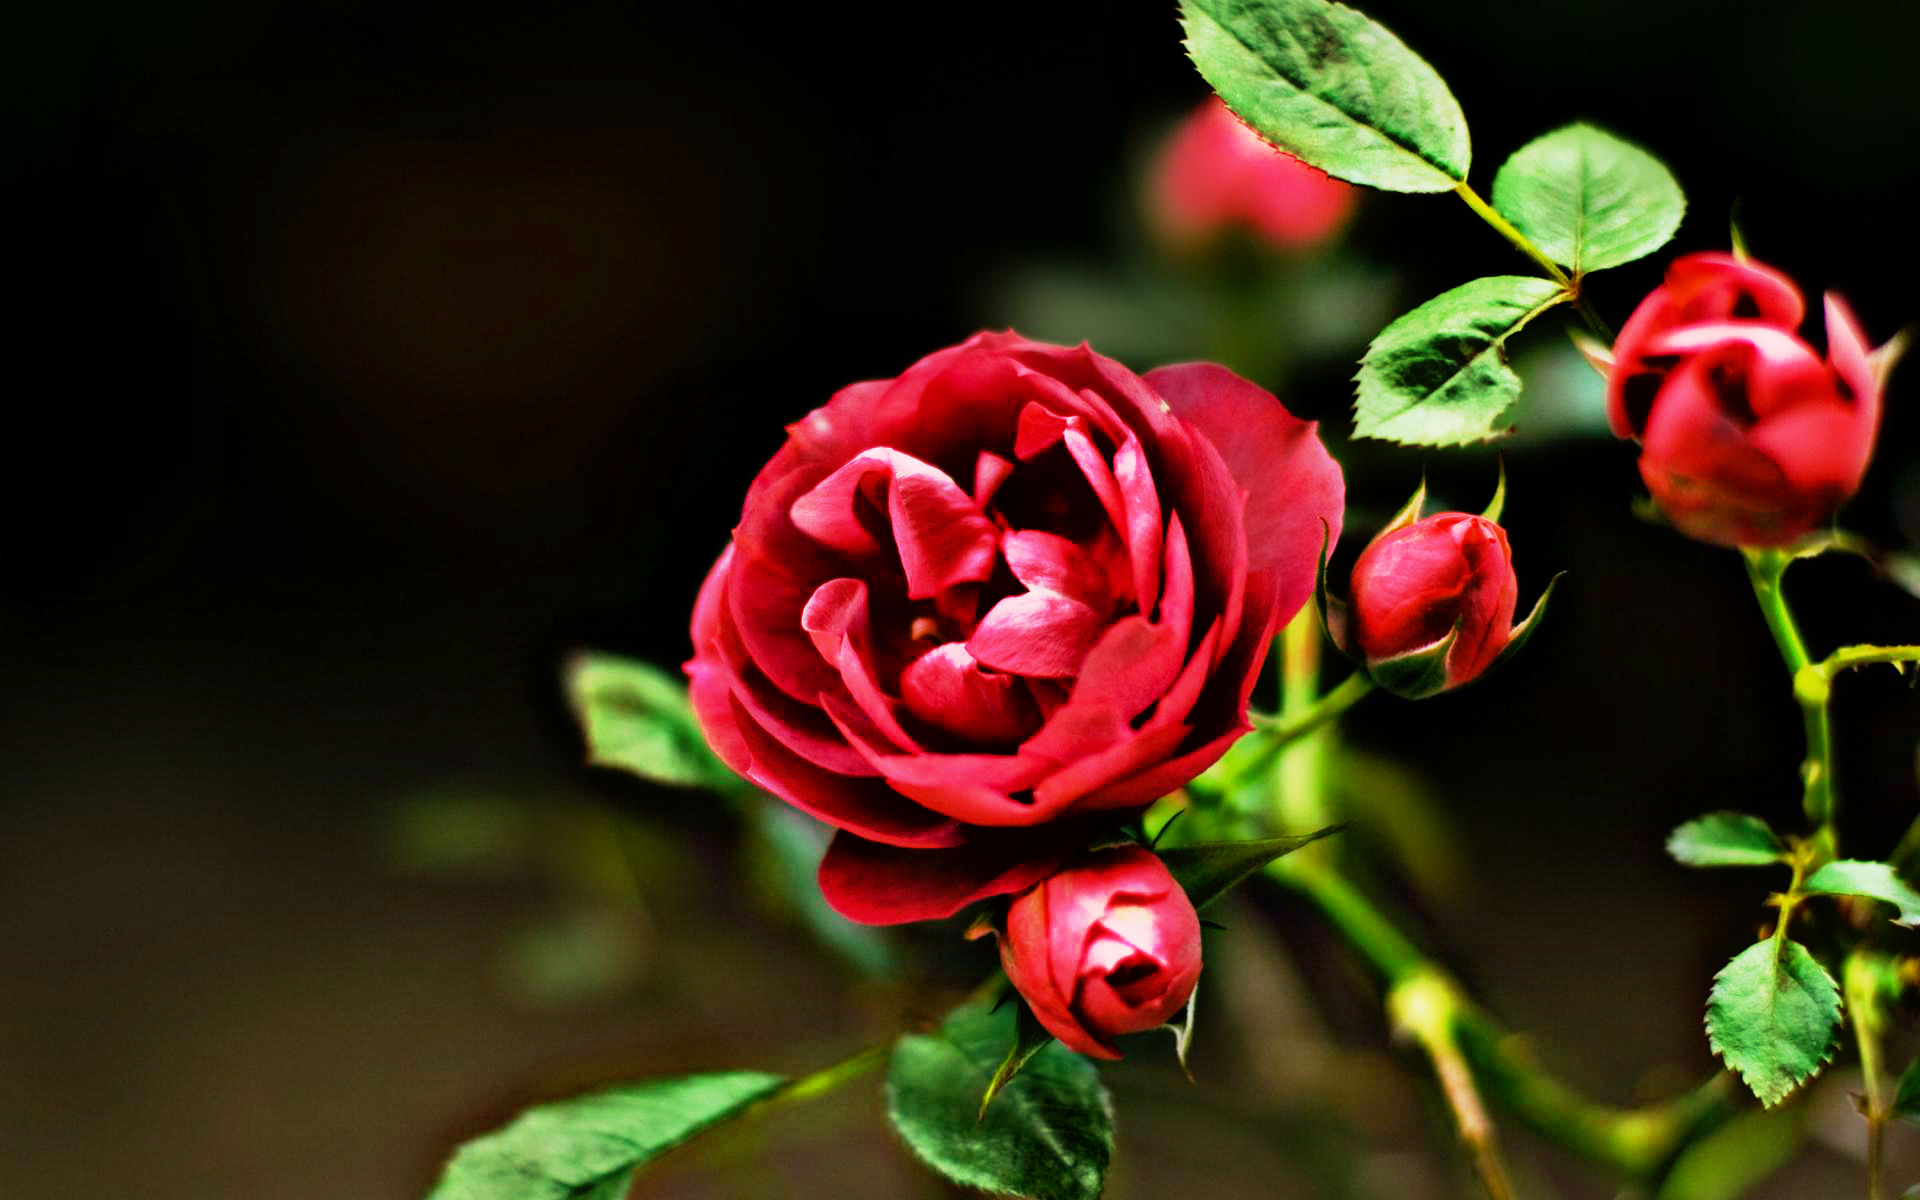 Red flowers hd nature wallpaper with rose picture hd - Red rose flower hd images ...